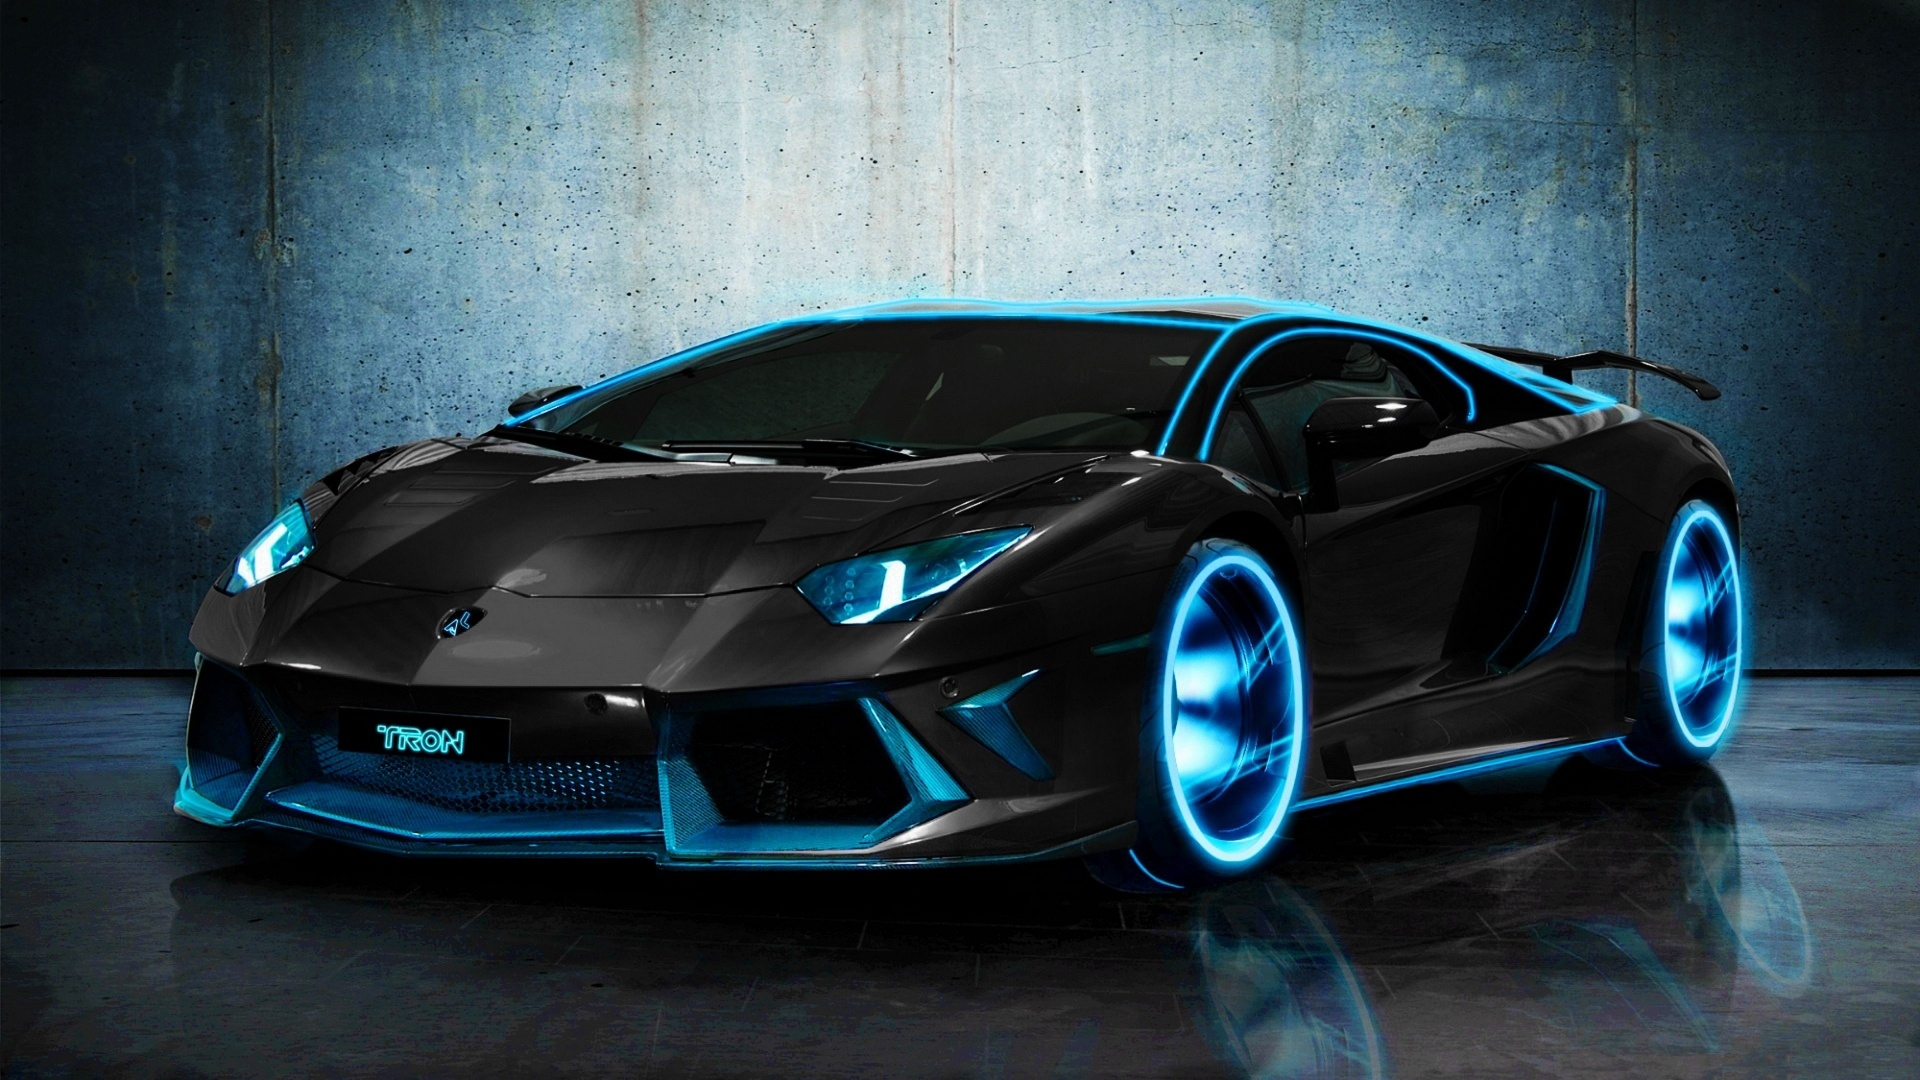 TRON Lamborghini Aventador Wallpaper HD 1080p Pictures Photos 1920x1080